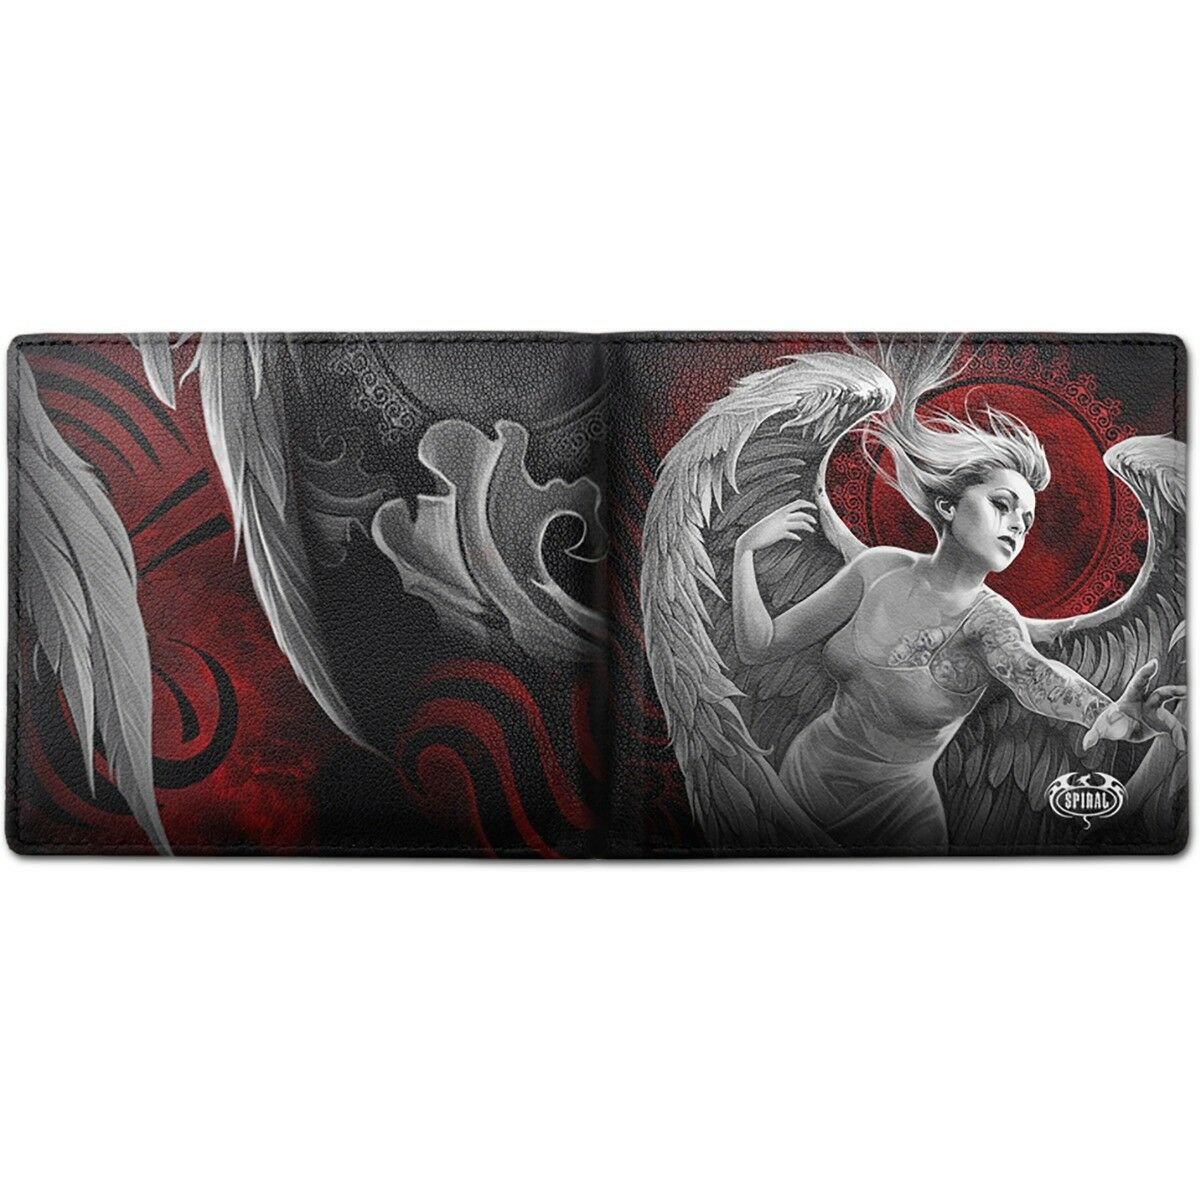 SPIRAL DIRECT ANGEL DESPAIR BIFOLD WALLET WITH RFID BLOCKING AND GIFT BOX/Native